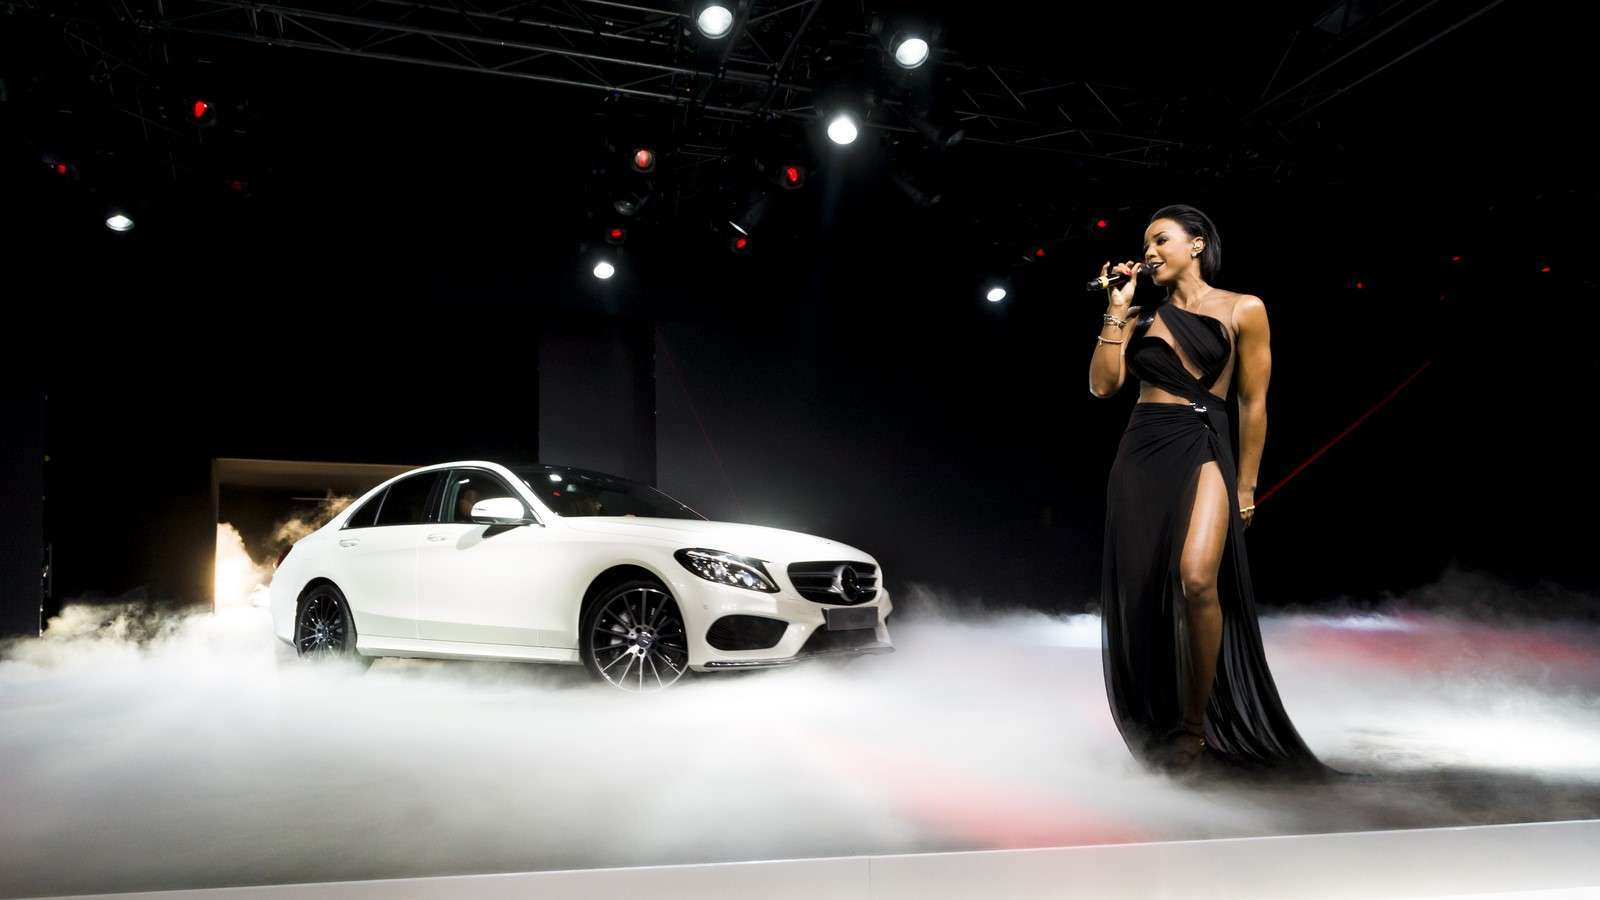 Mercedes Benz C-Class 2015 Live Photos from Detroit 2014